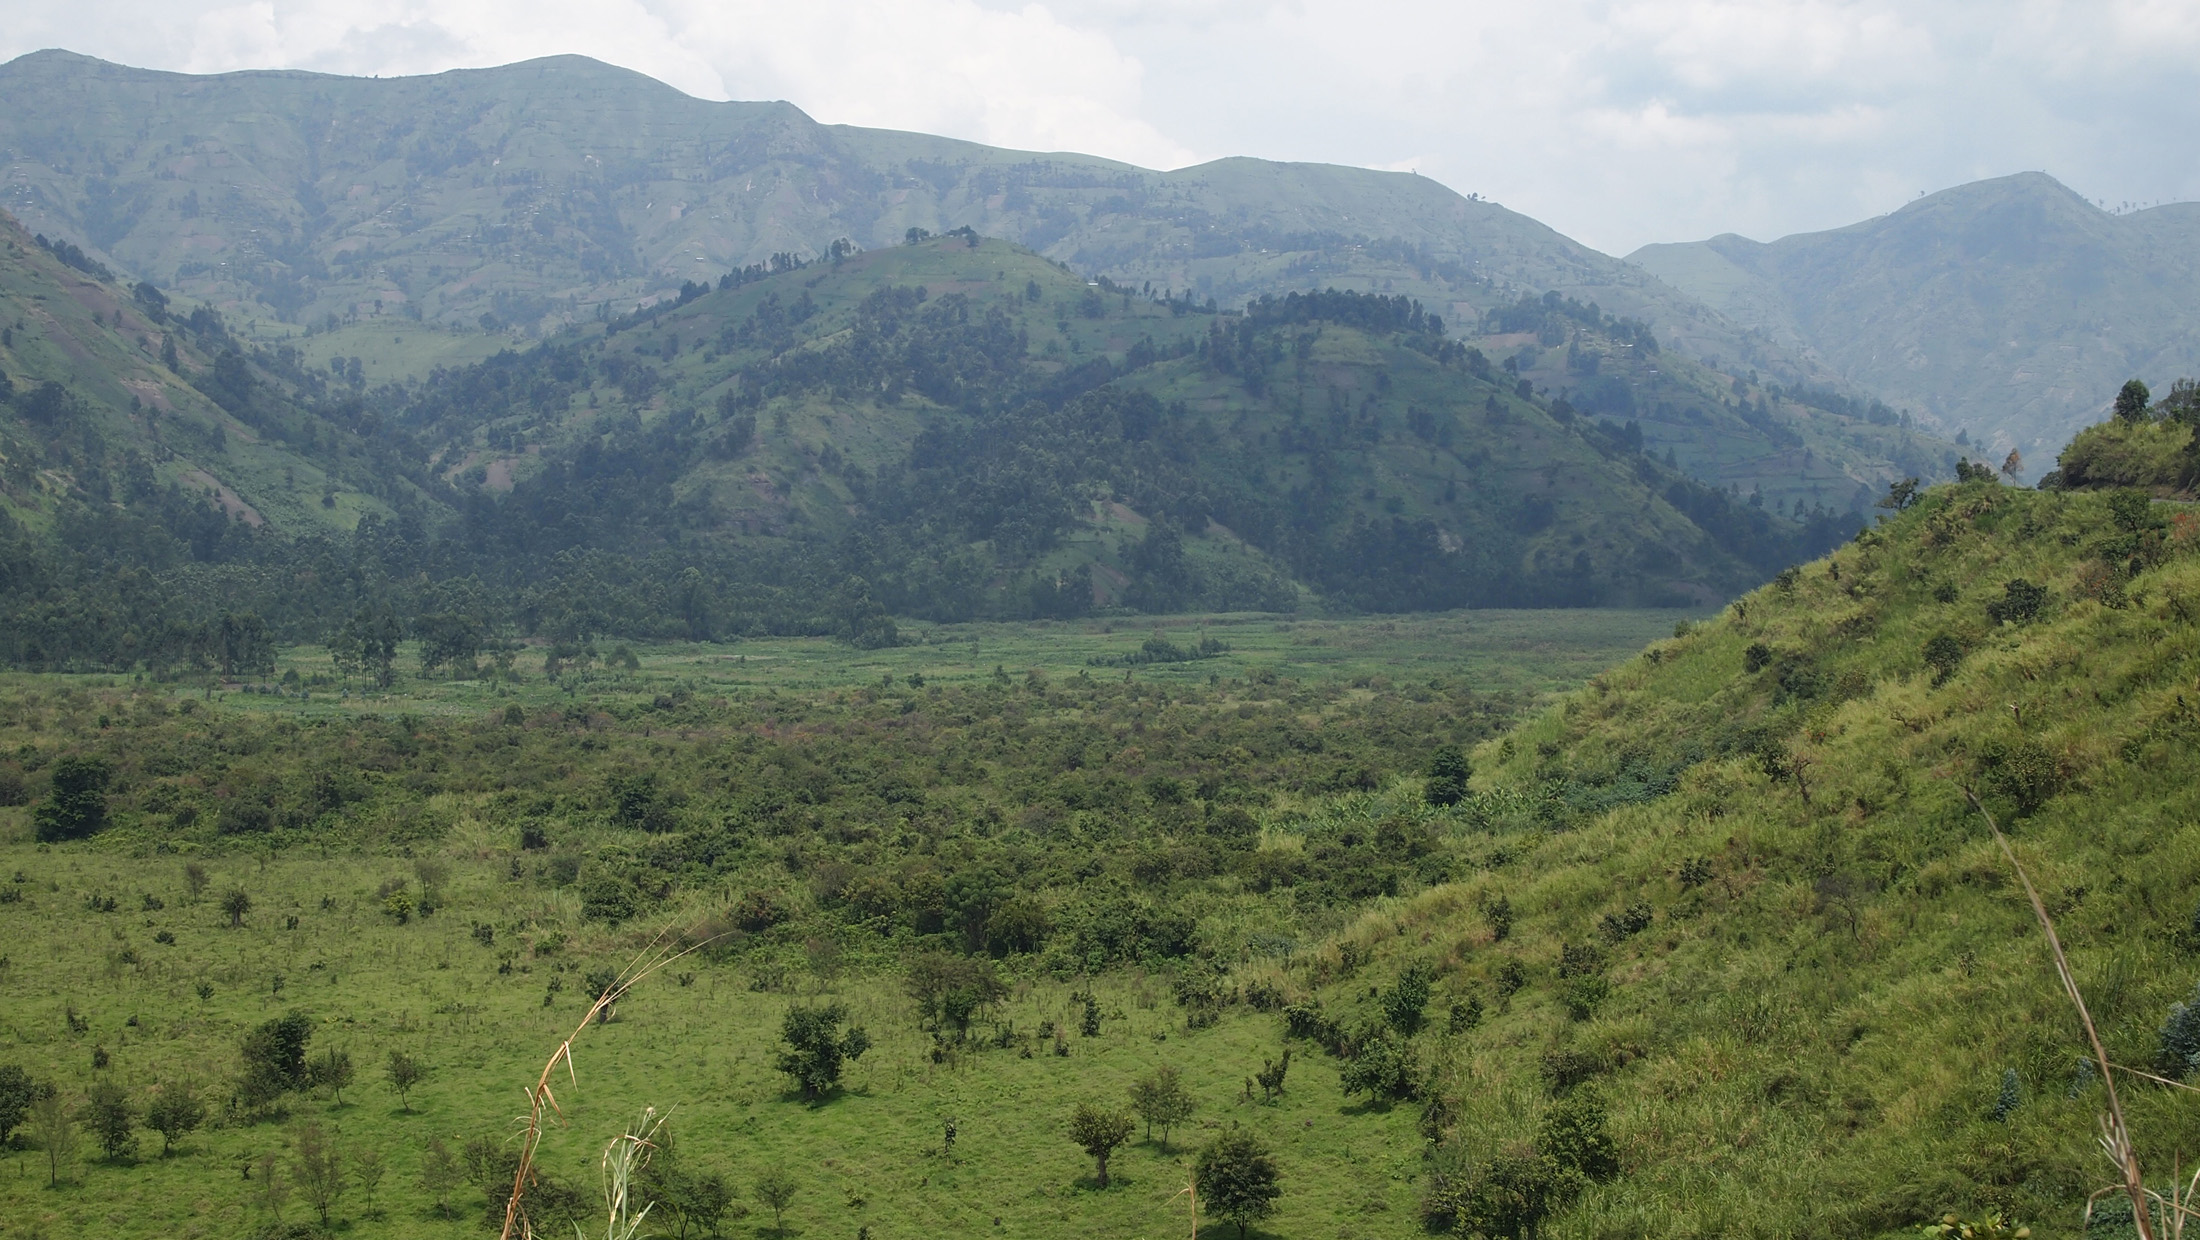 While agriculturalists eke out a living in the hills, this plain in Masisi has been taken for pasture